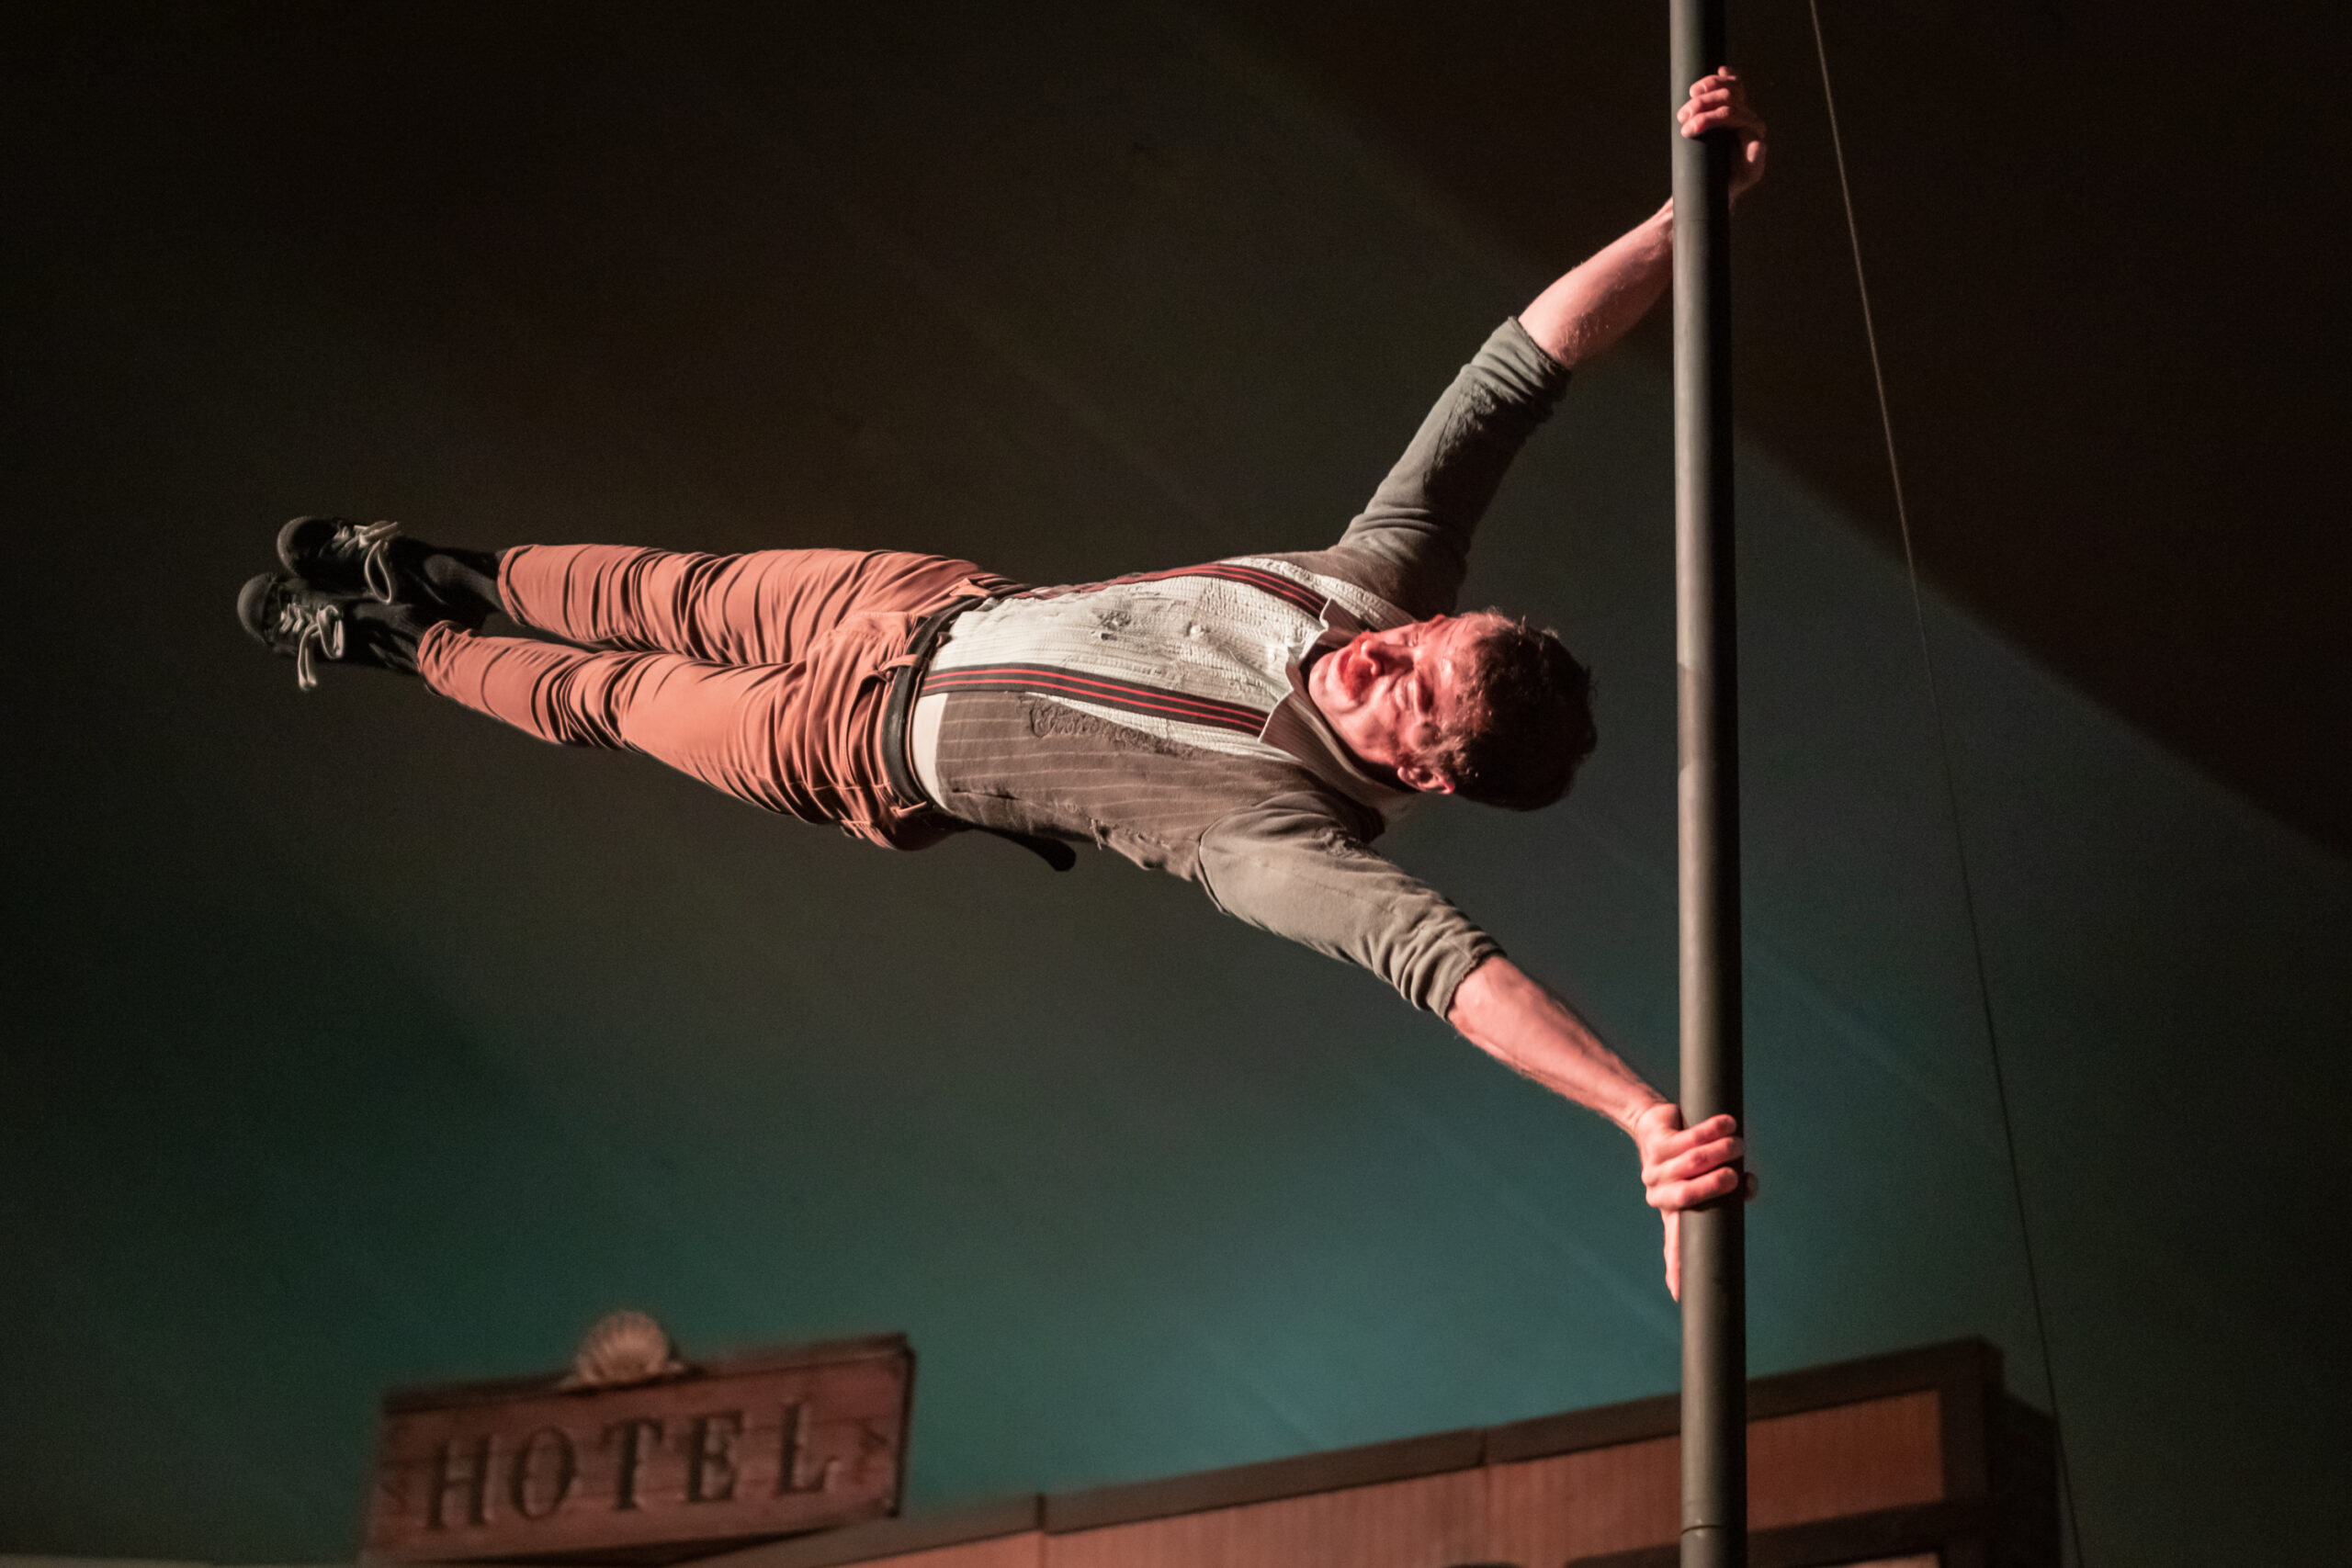 Image of Ross Travis performing at Vau de Vire's The Soiled Dove dinner theater Under the Tortona Big Top in Downtown Oakland